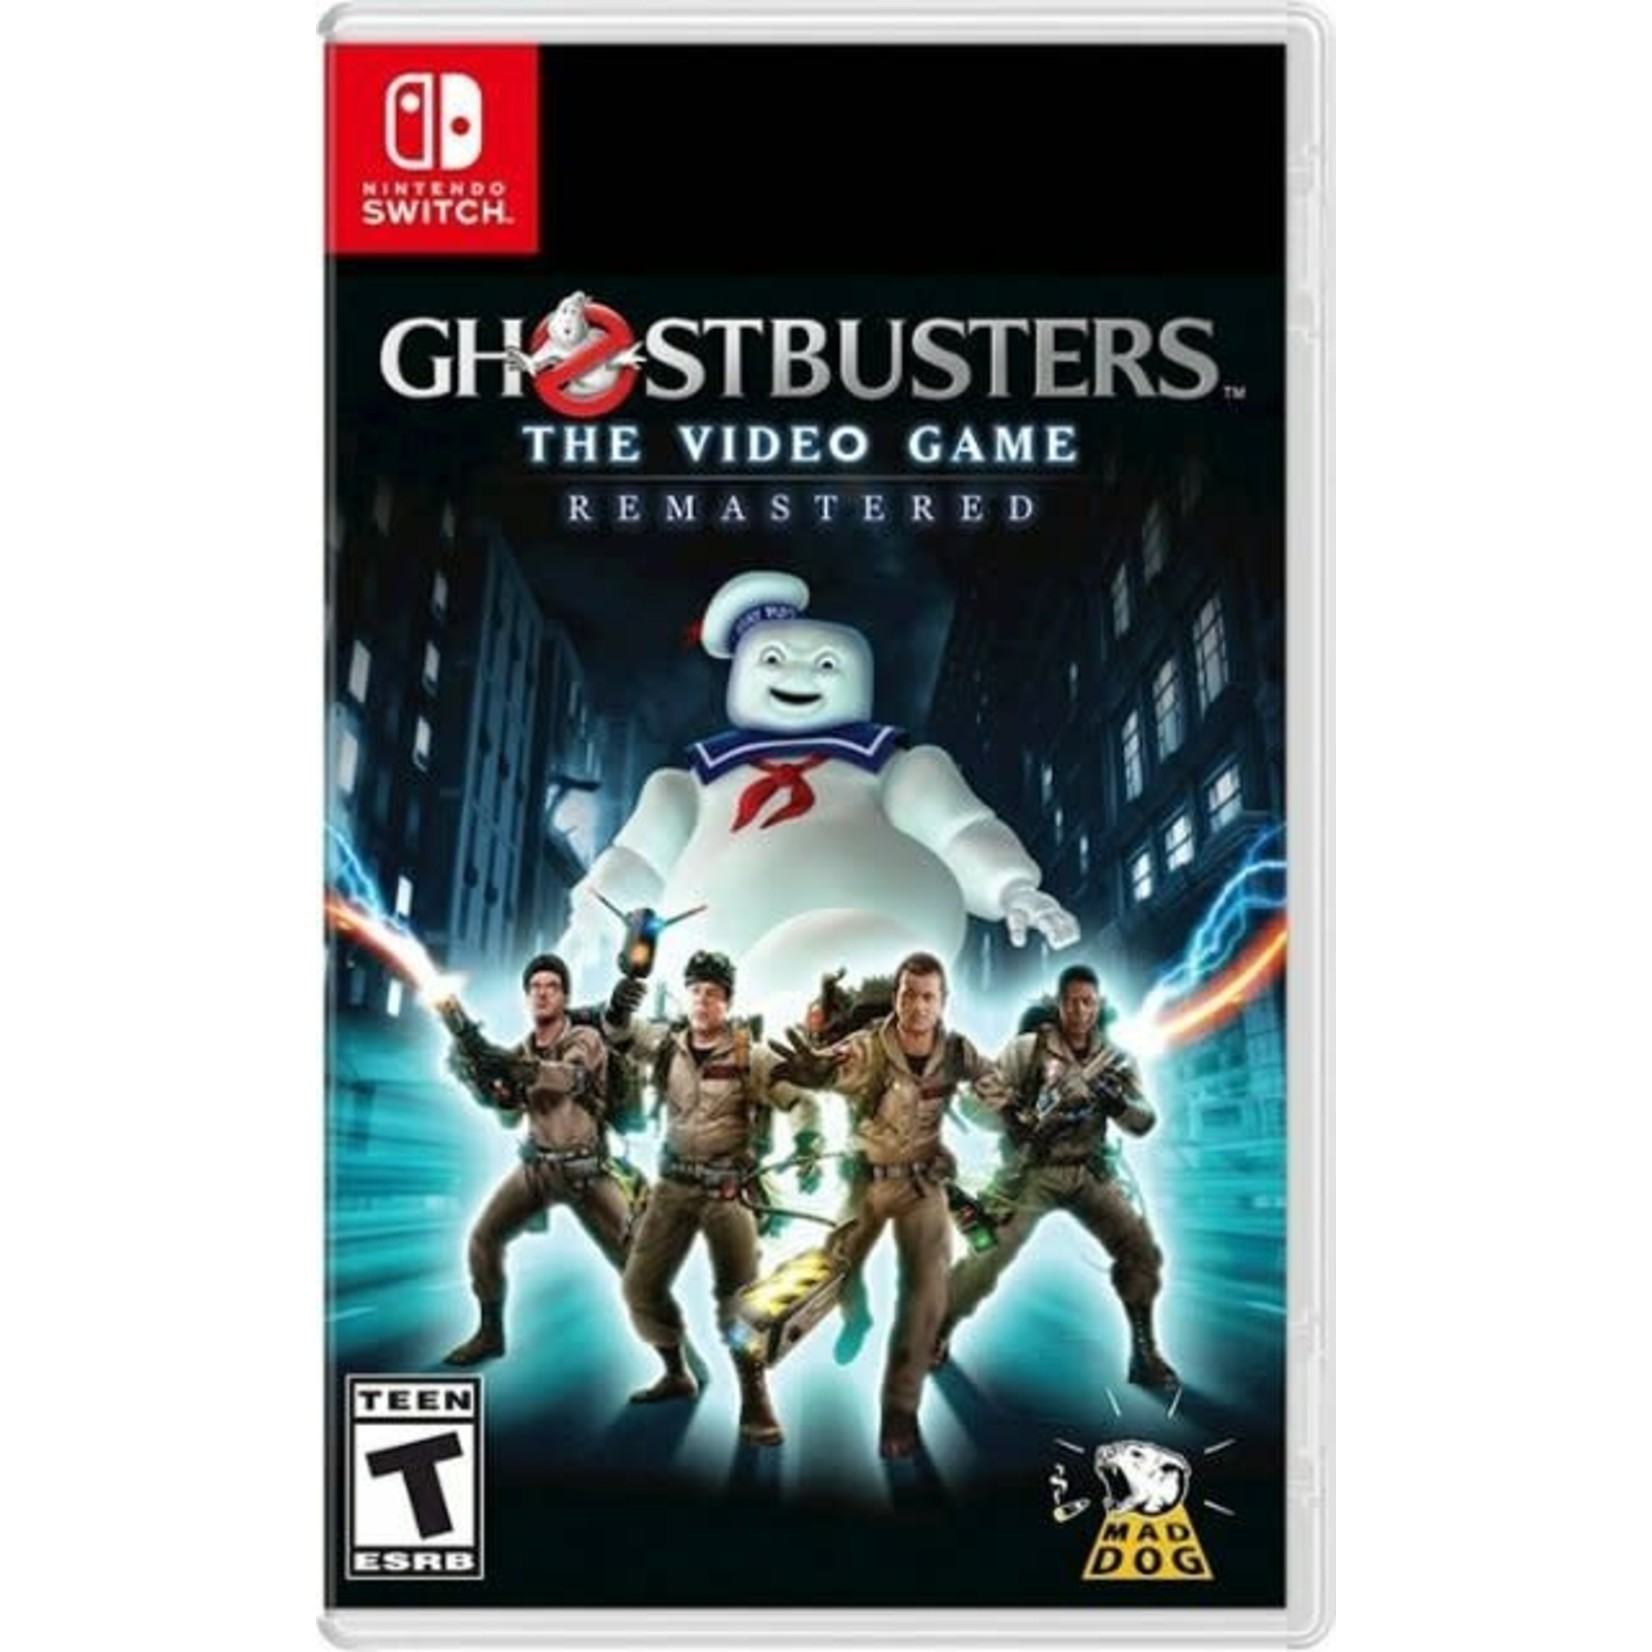 SWITCHU-GHOSTBUSTERS: THE VIDEO GAME REMASTERED